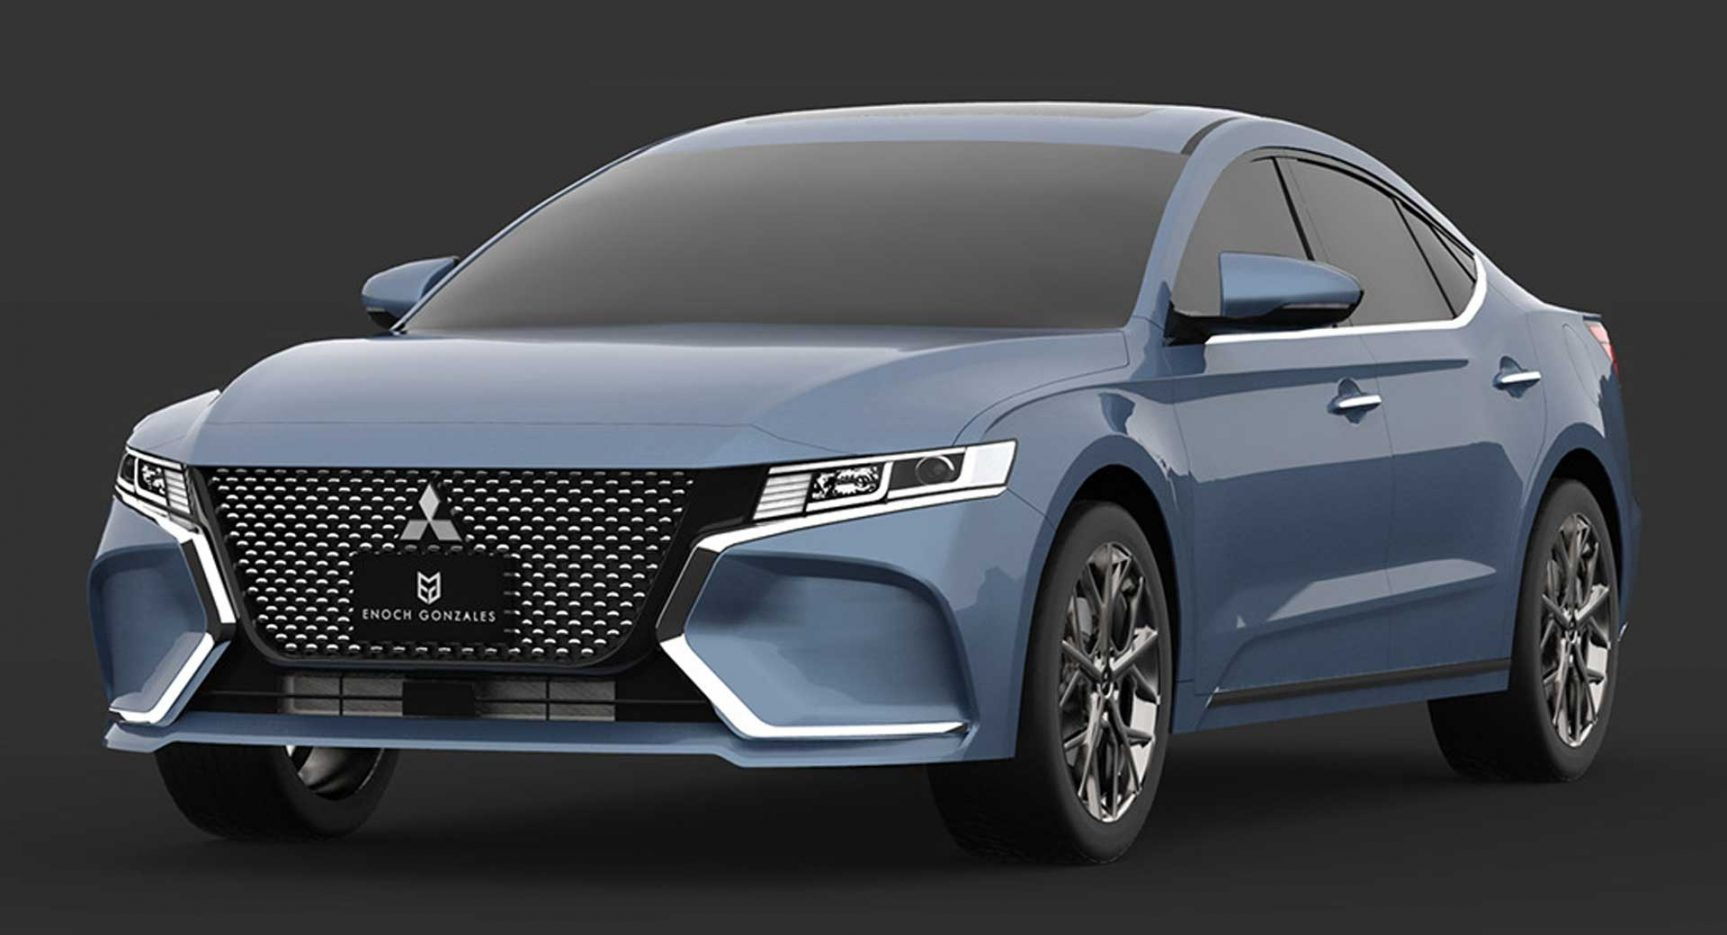 56 All New 2020 Mitsubishi Lancer Performance and New Engine